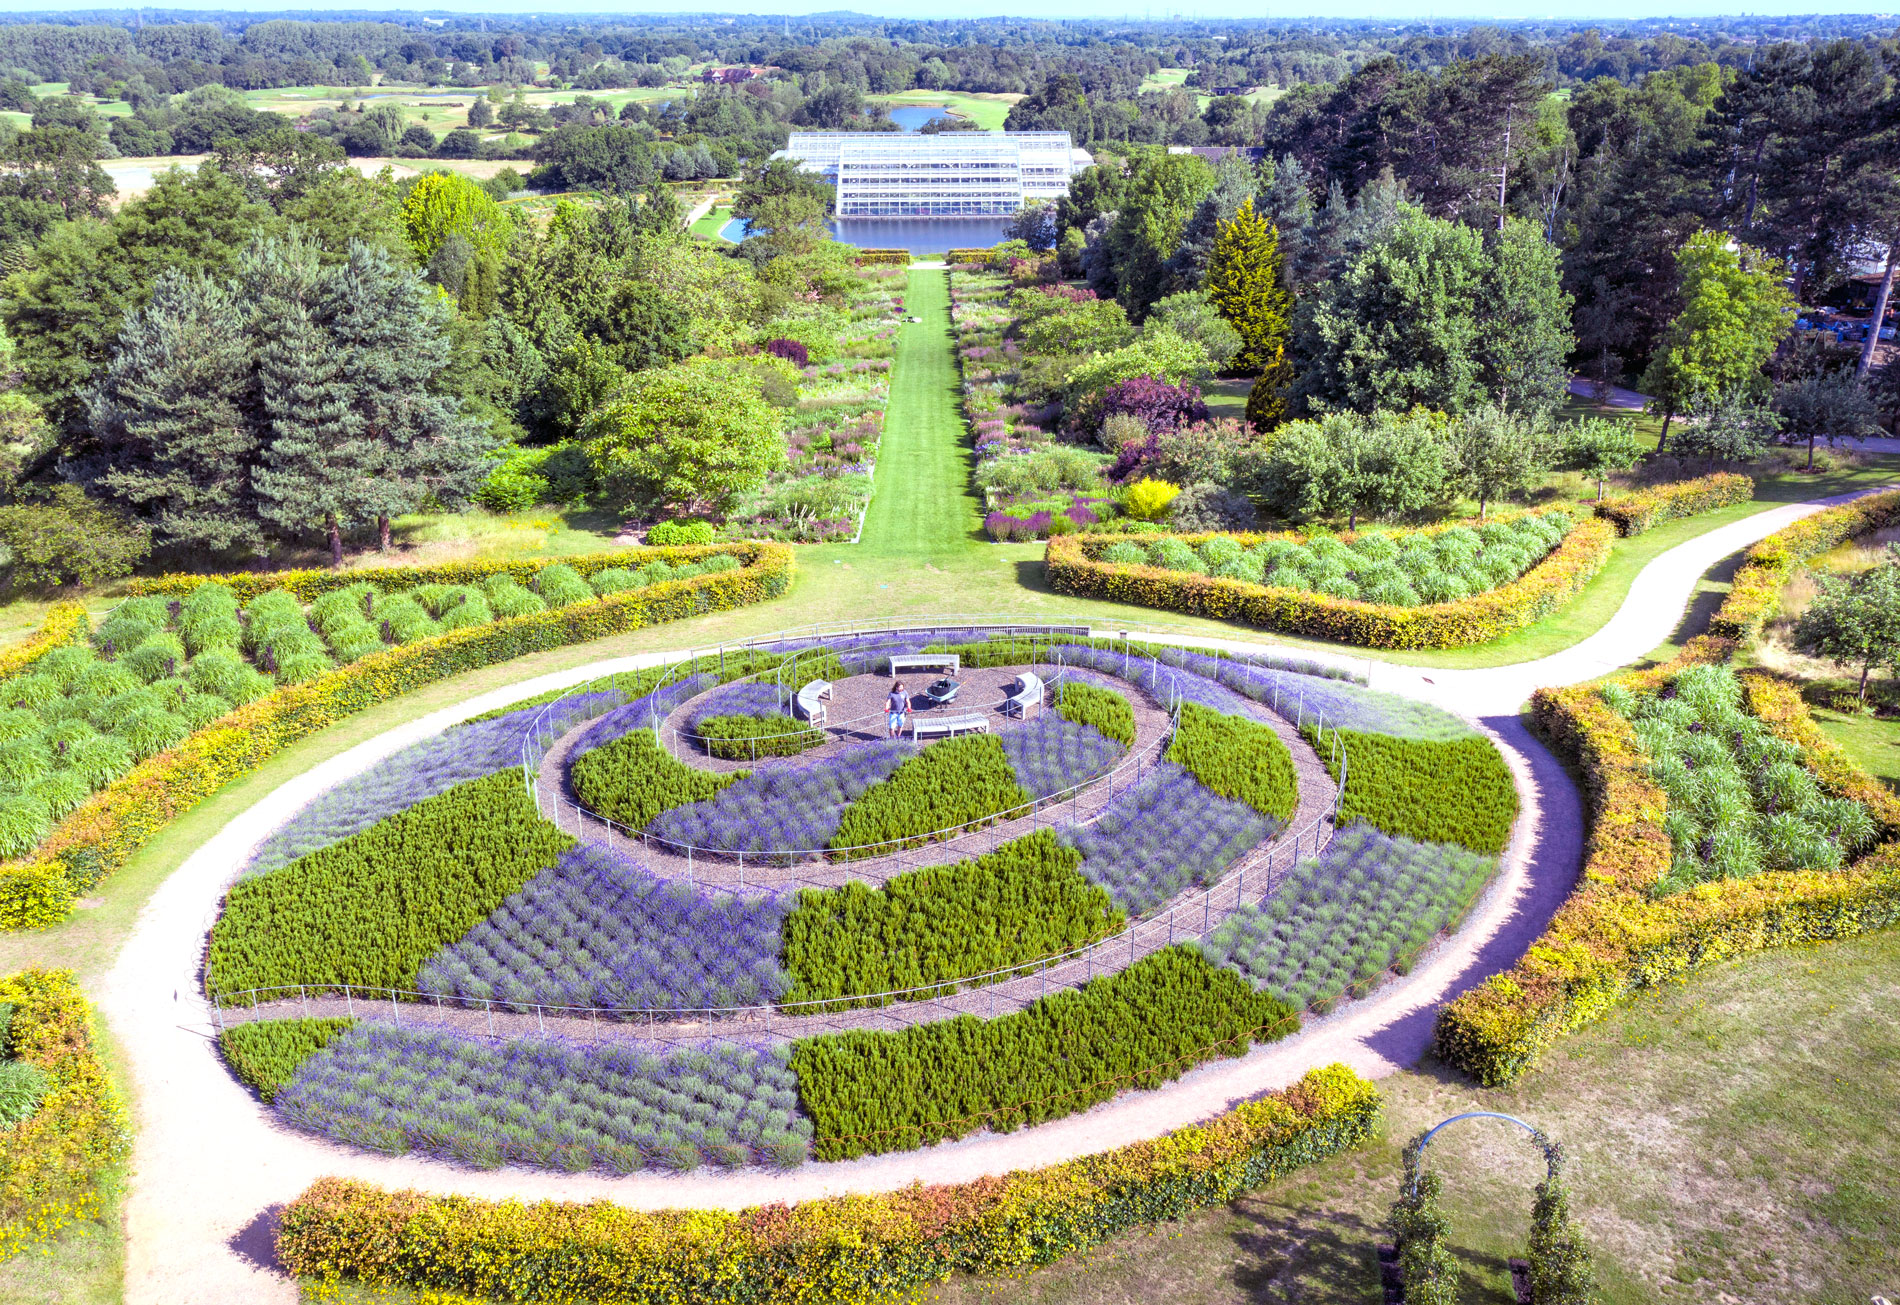 The Viewing Mount RHS Wisley